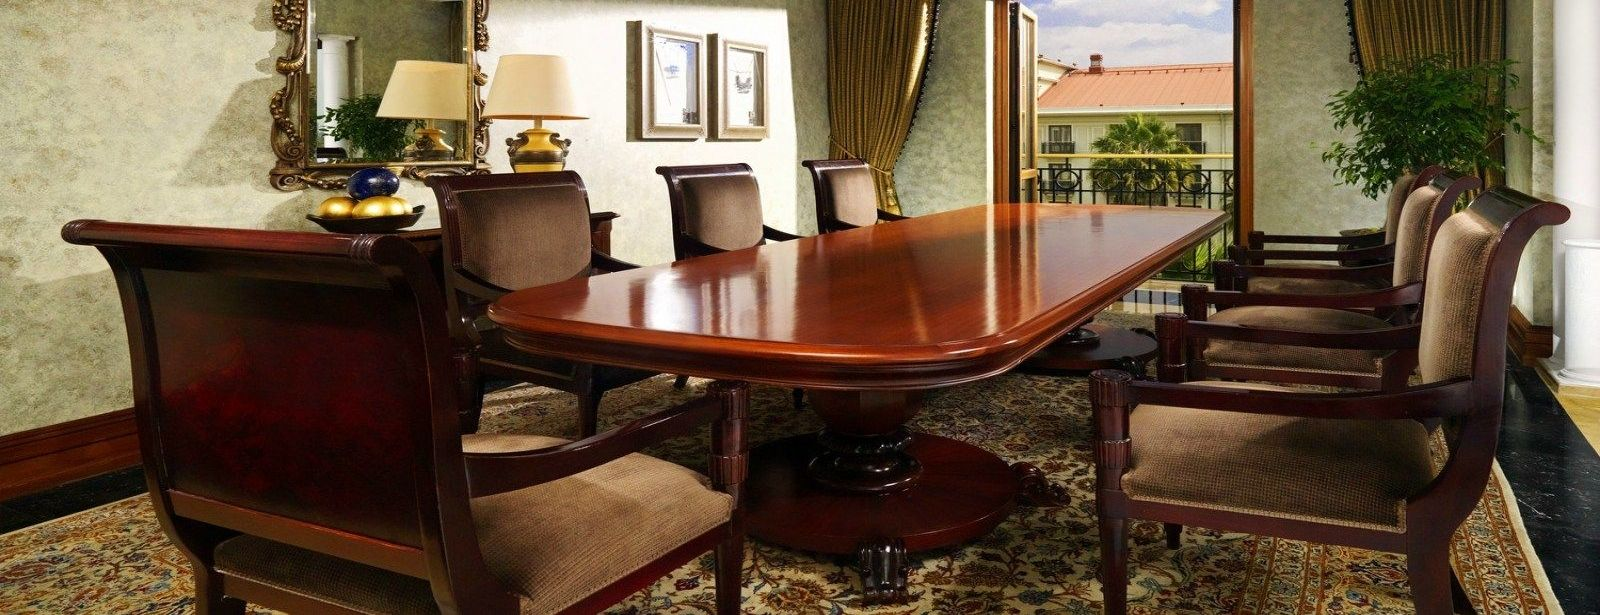 Executive Suite dining room with long wooden dining table and plush chairs